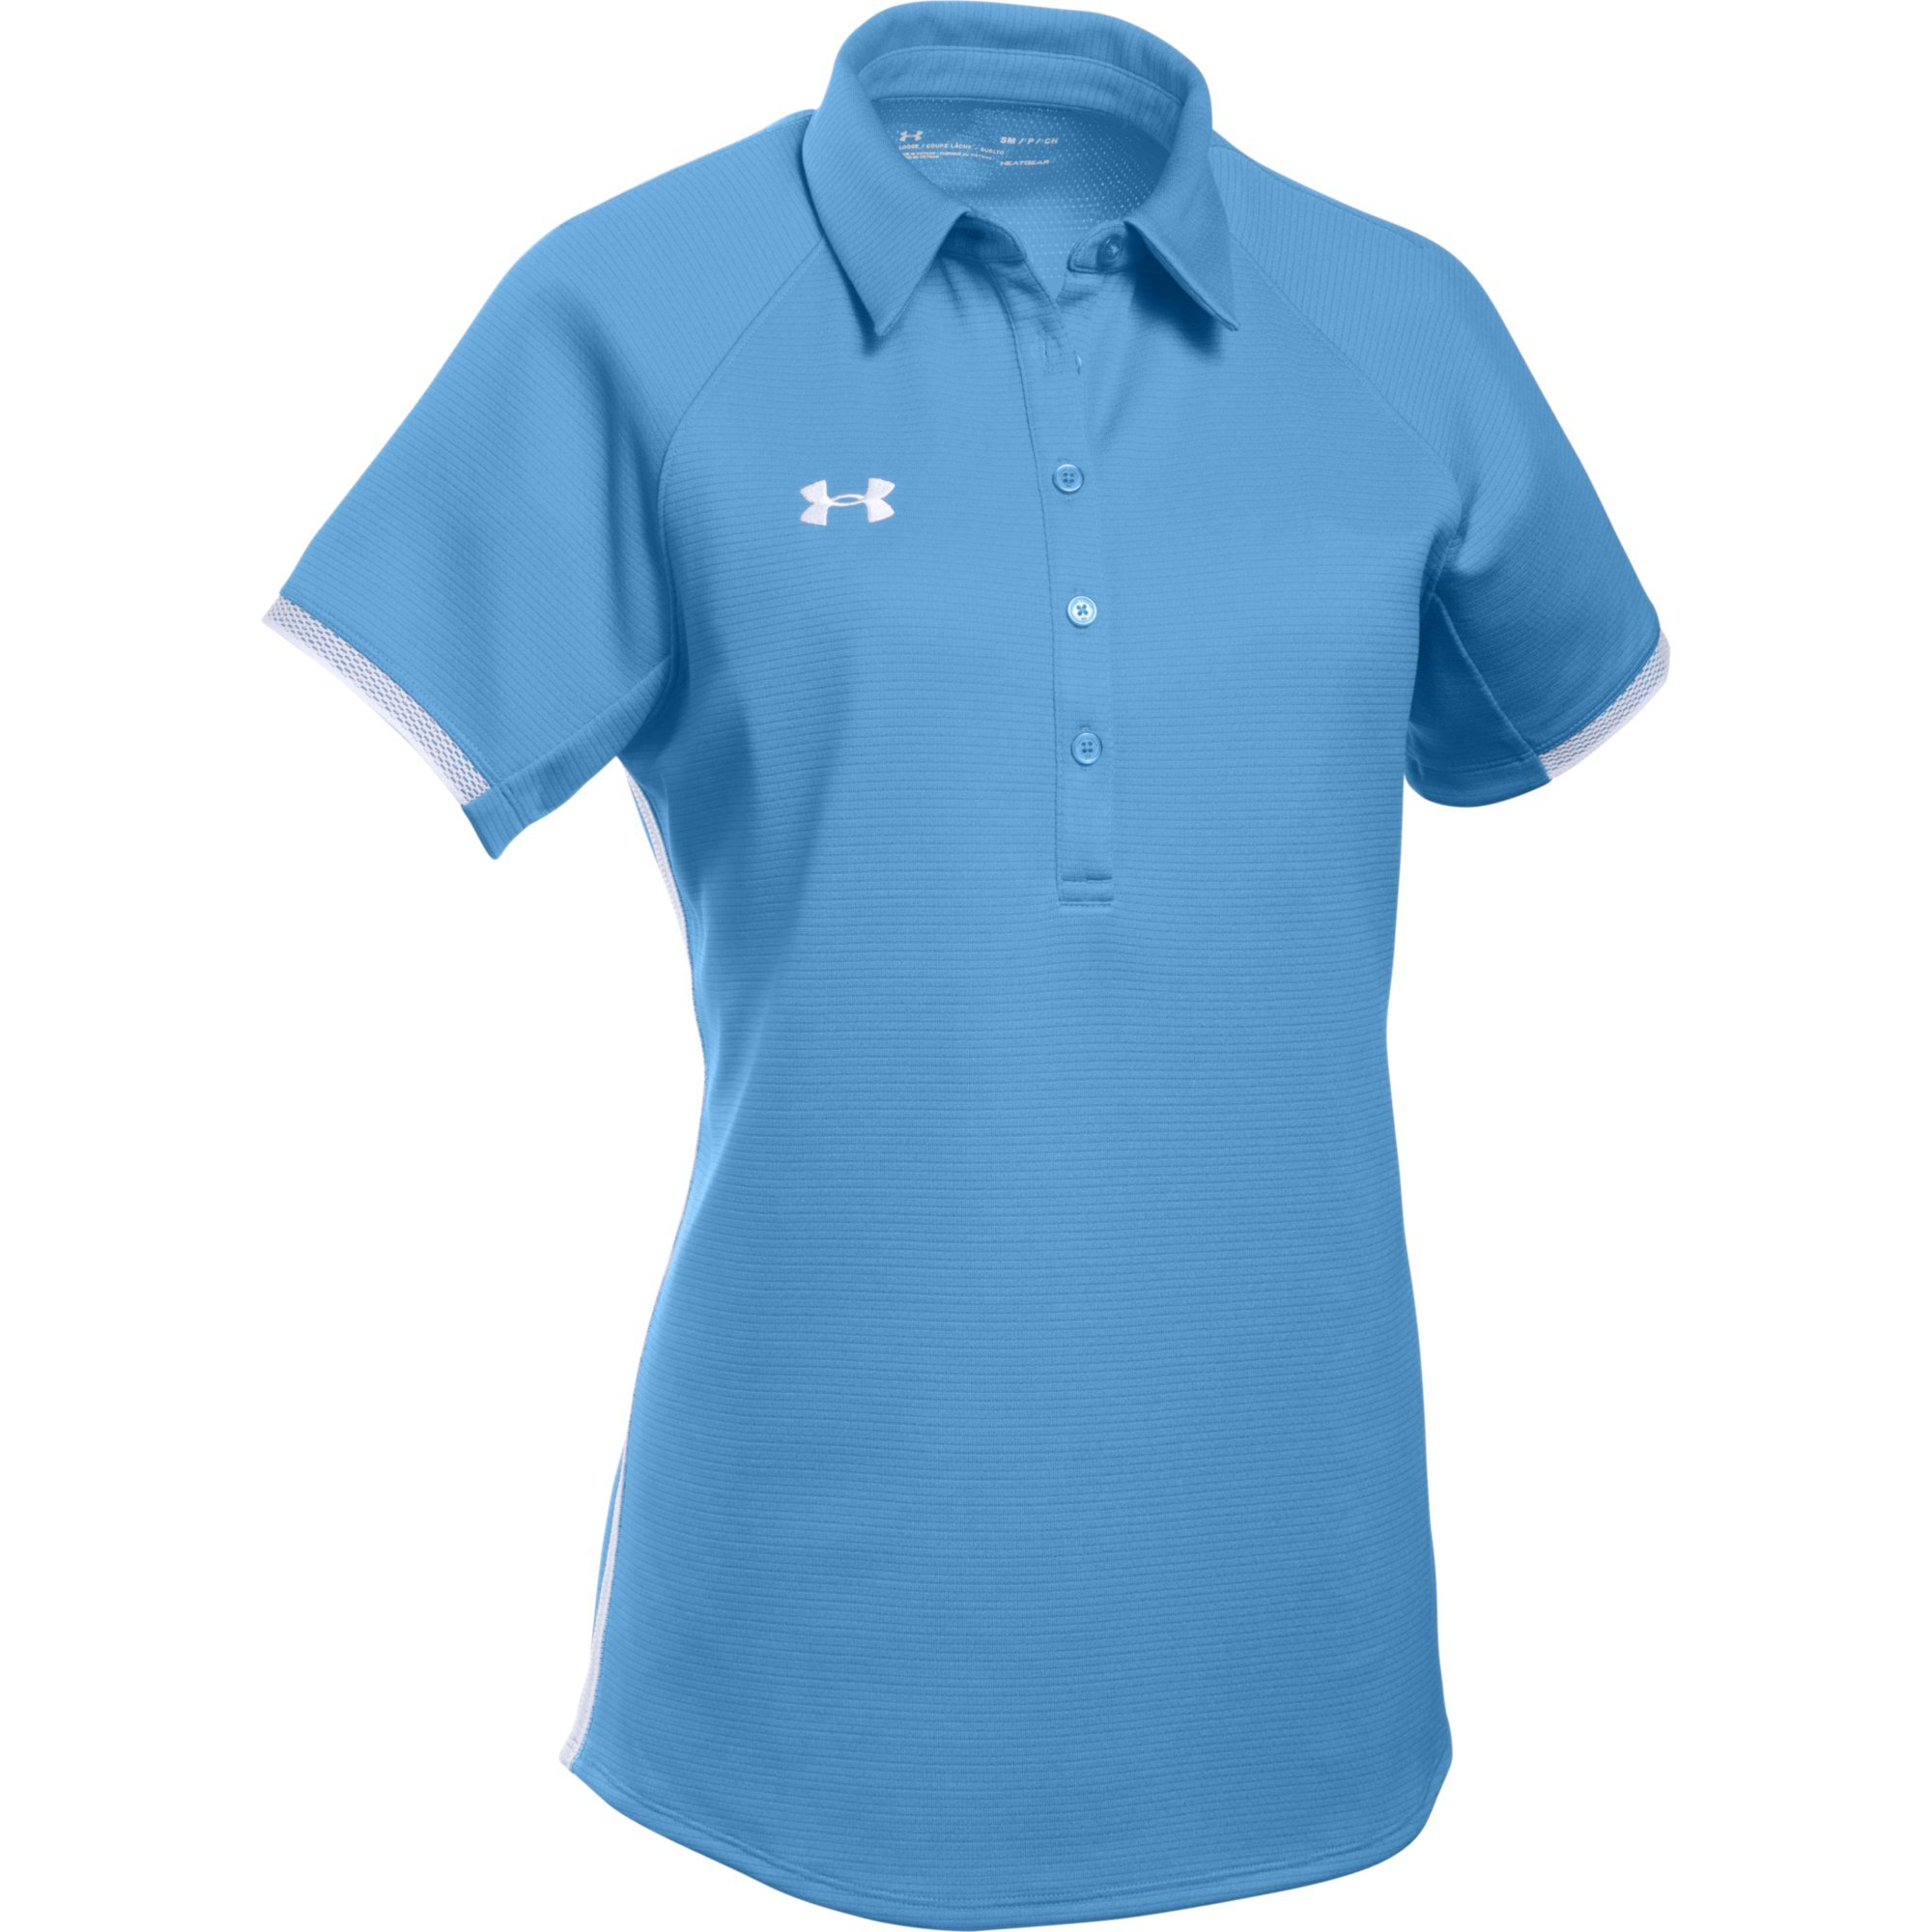 Under Armour Women's UA Rival Polo (X-Large, Carolina Blue-White) by Under Armour